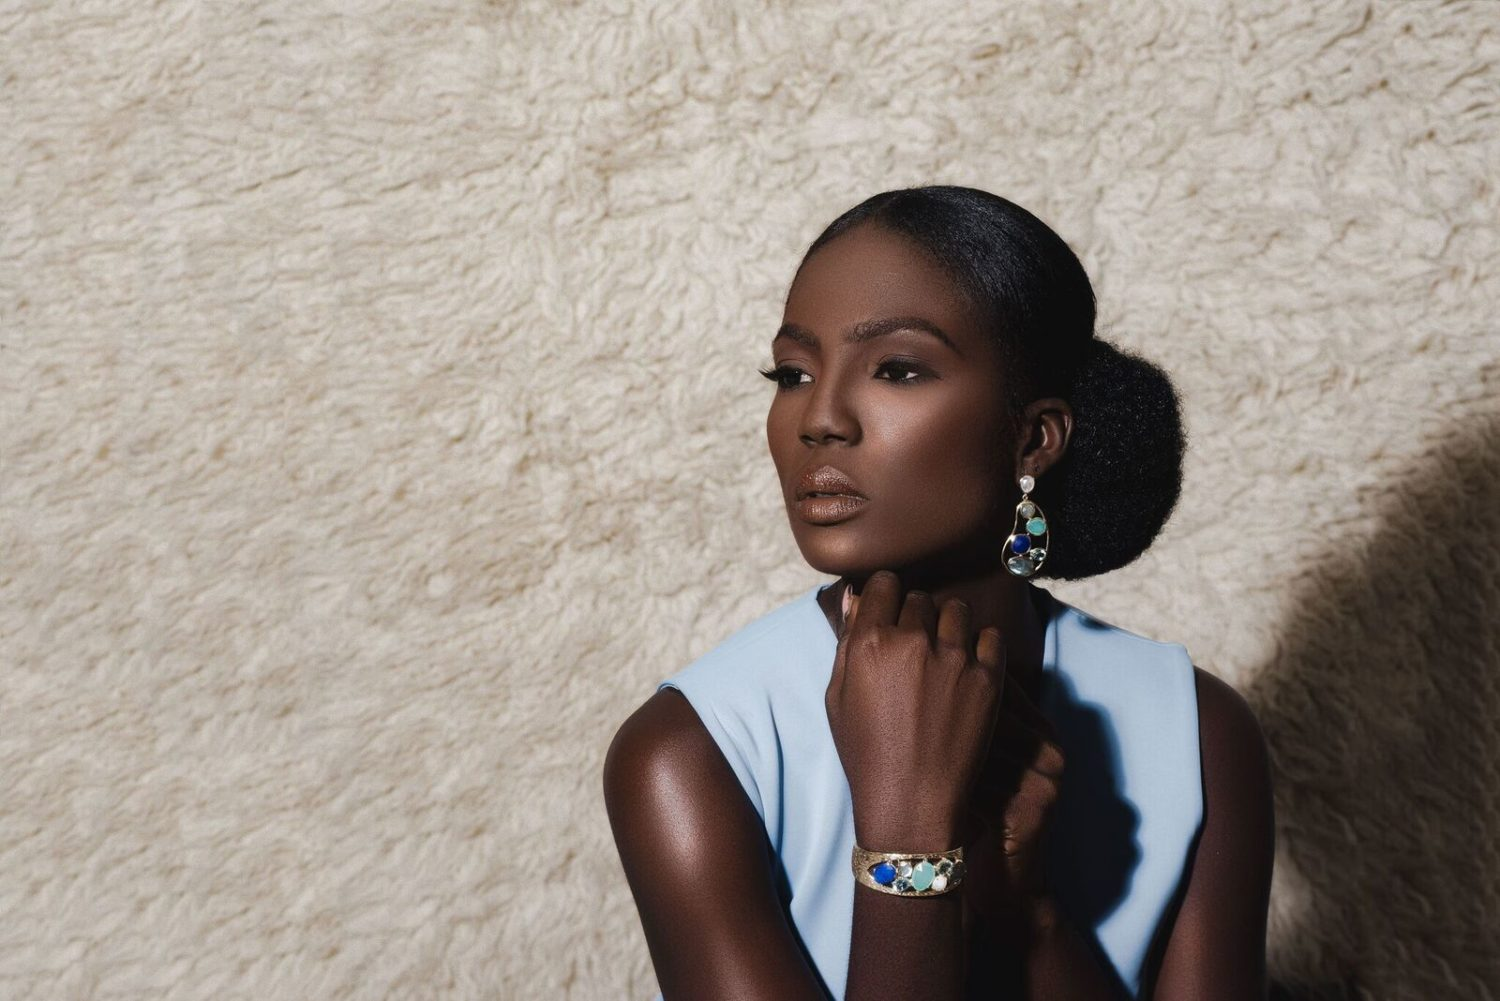 FF Fine Jewellery Just Unveiled A Range Of AccessoriesYou'll Want to Wear With Every Outfit